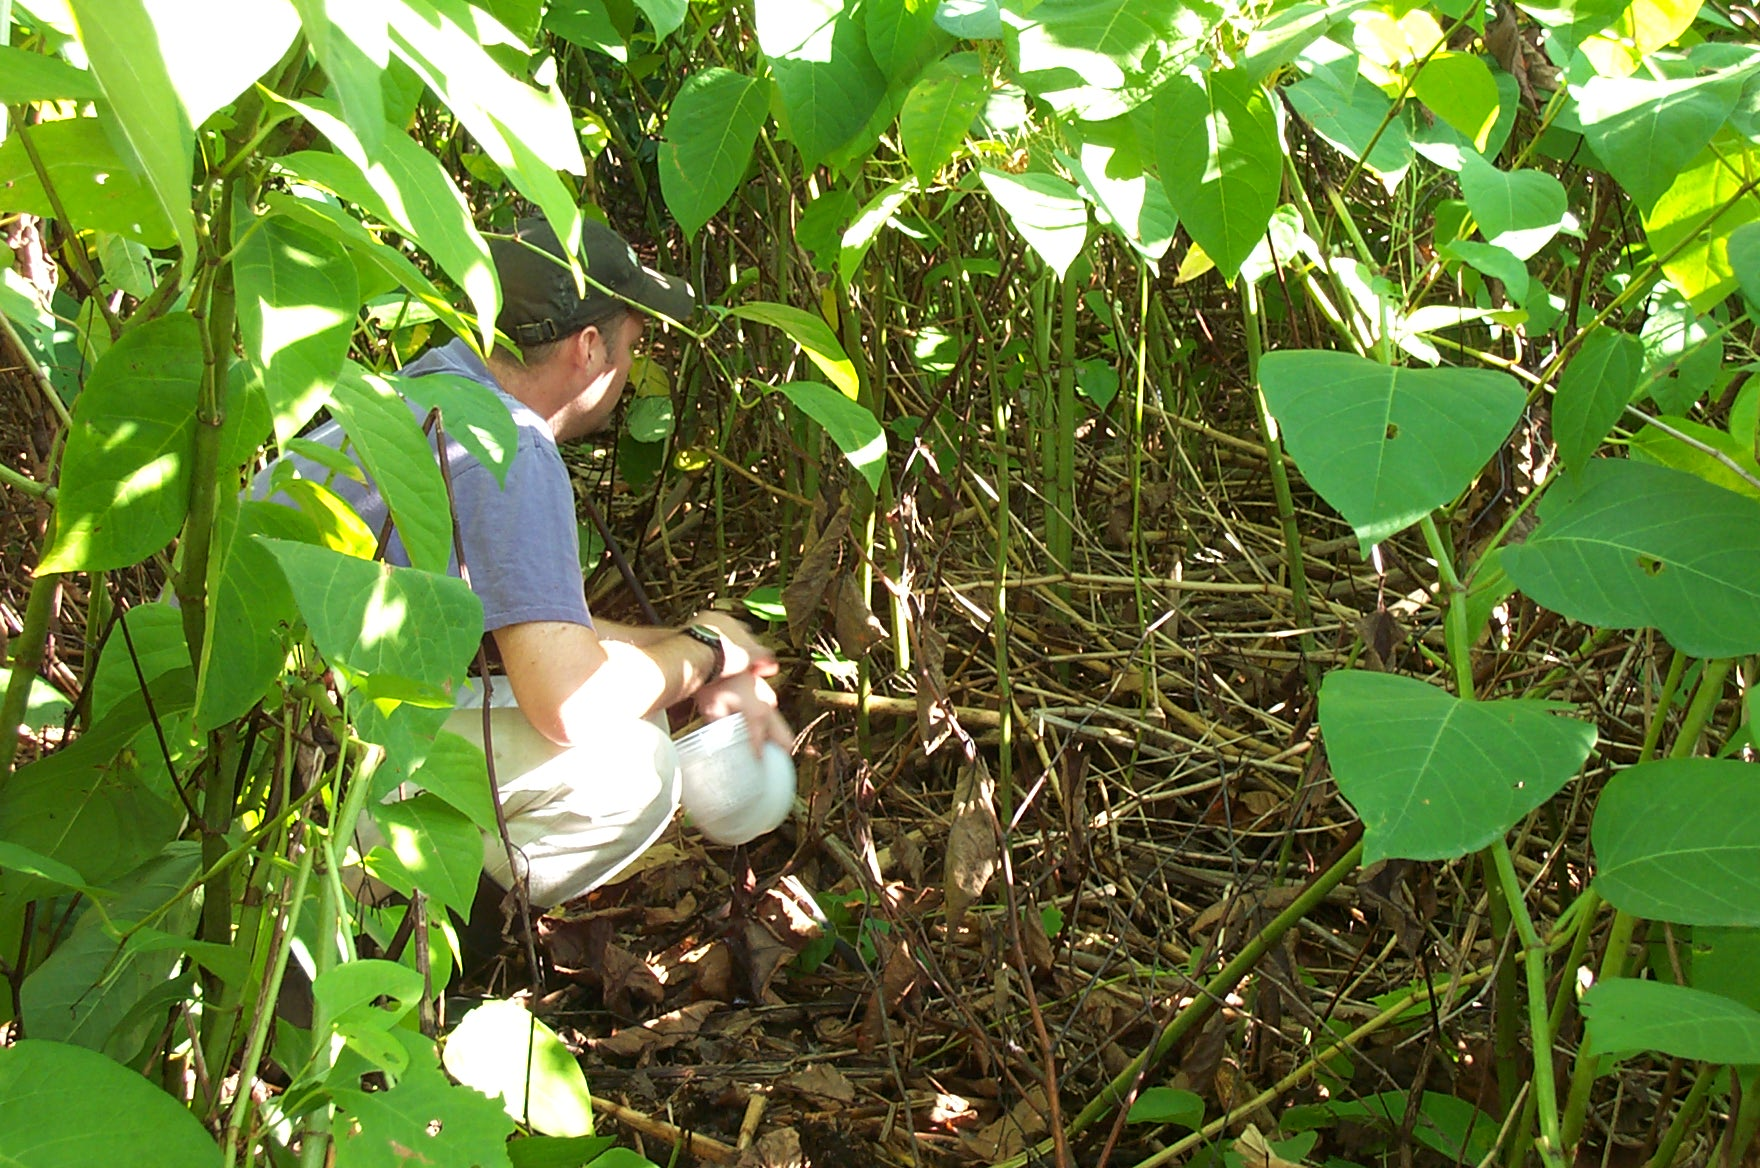 JCM3 crouching in Japanese knotweed understory by JCM2.jpg